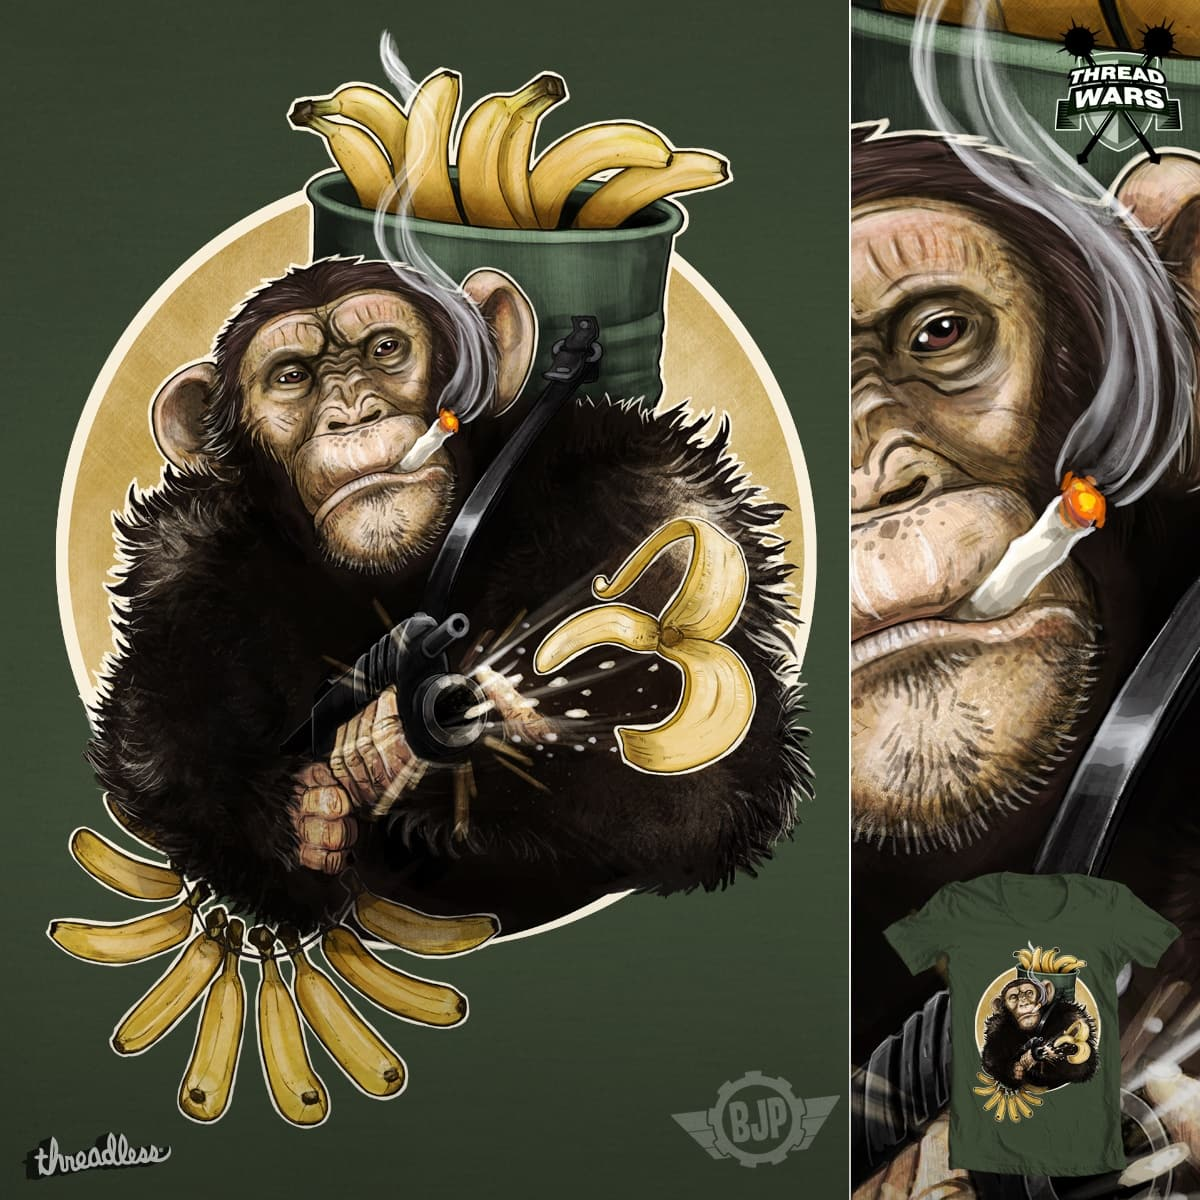 I LOVE THE SMELL OF BANANAS IN THE MORNING by BlancaJP on Threadless